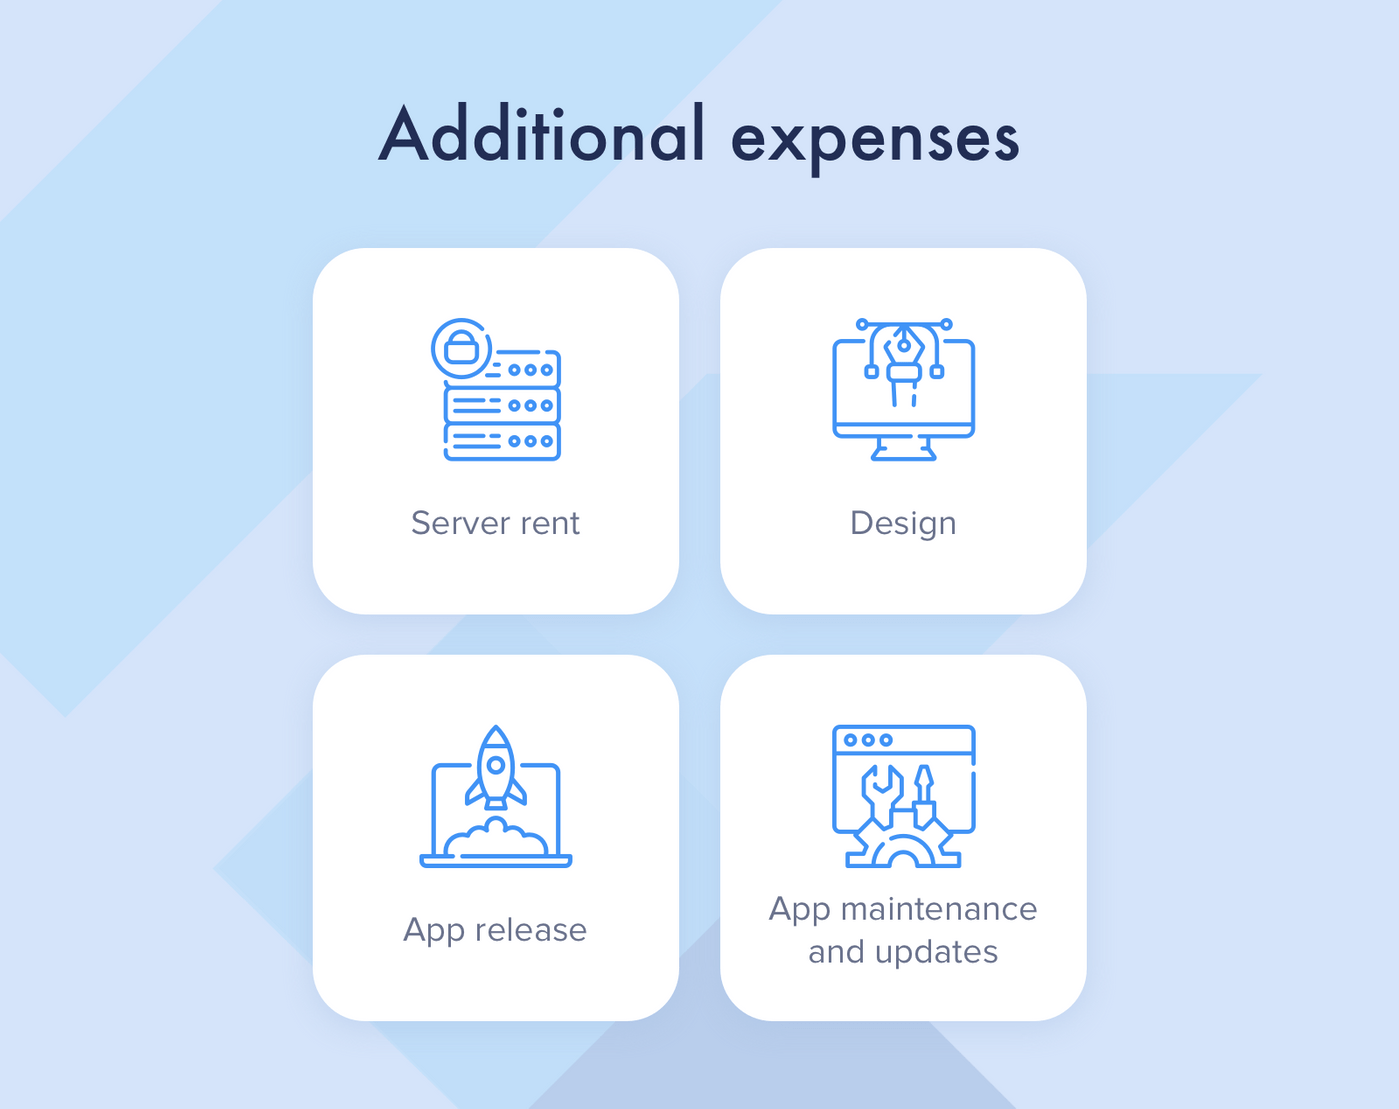 Flutter app development cost: additional expenses